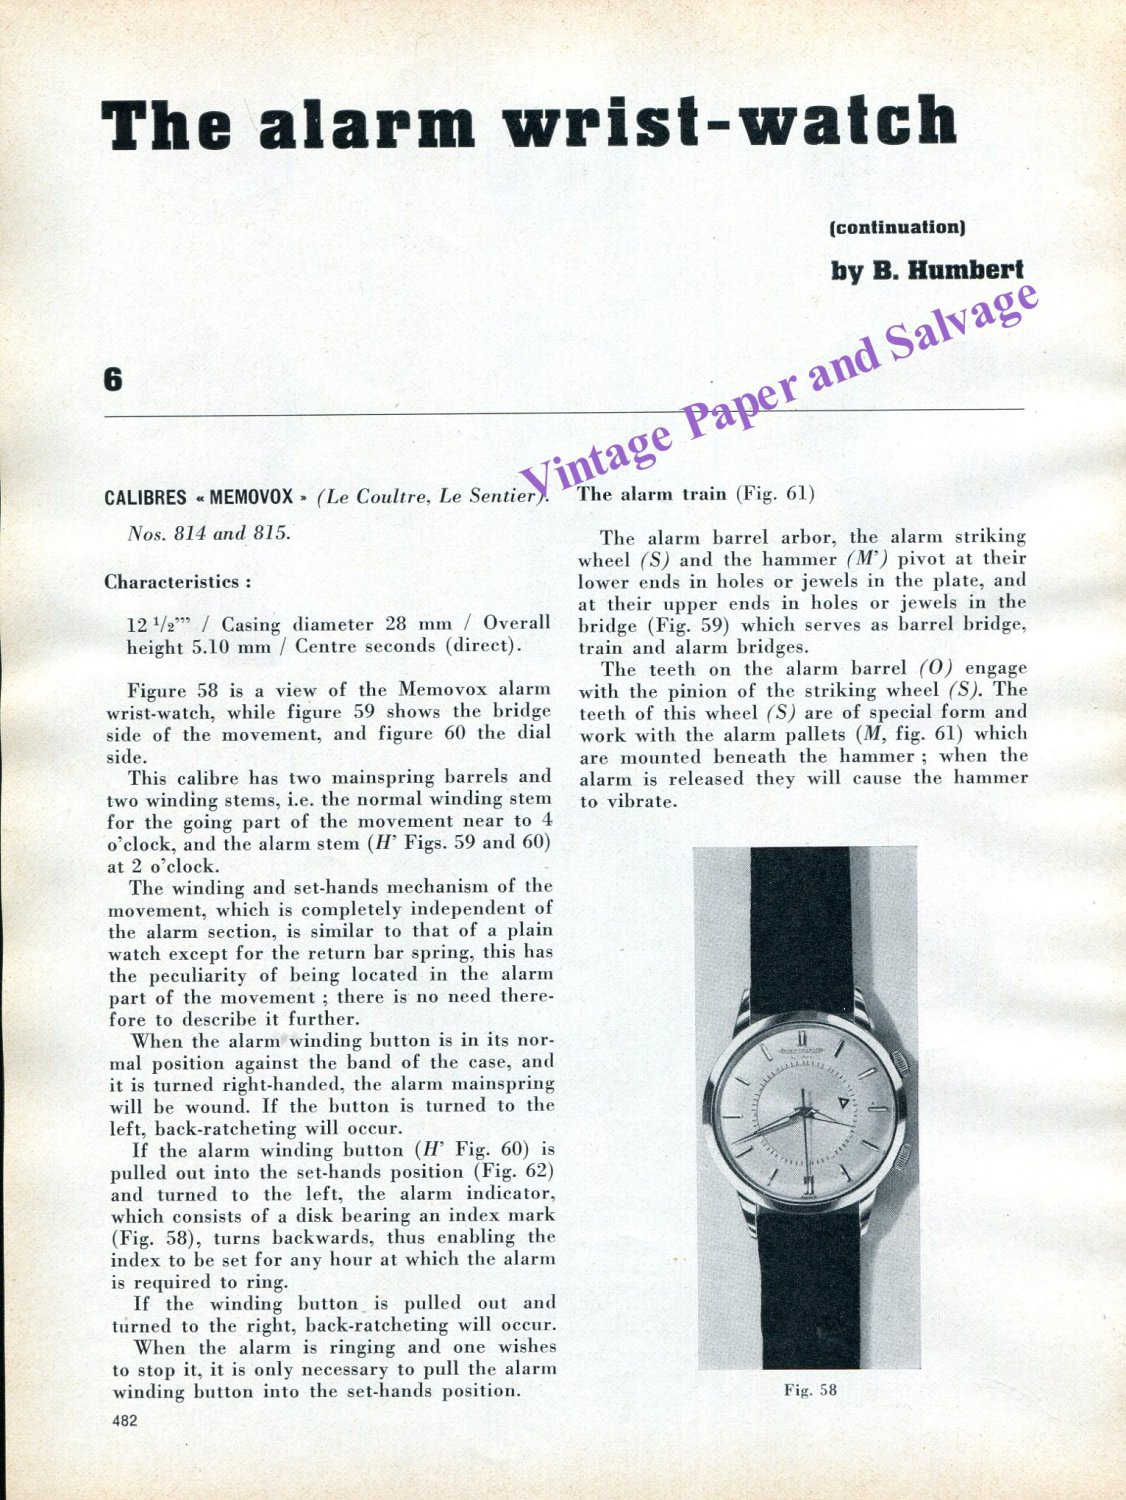 1960 Jaeger-LeCoultre Memovox The Alarm Wrist Watch No. 814 No. 815 by B. Hubert Swiss Suisse